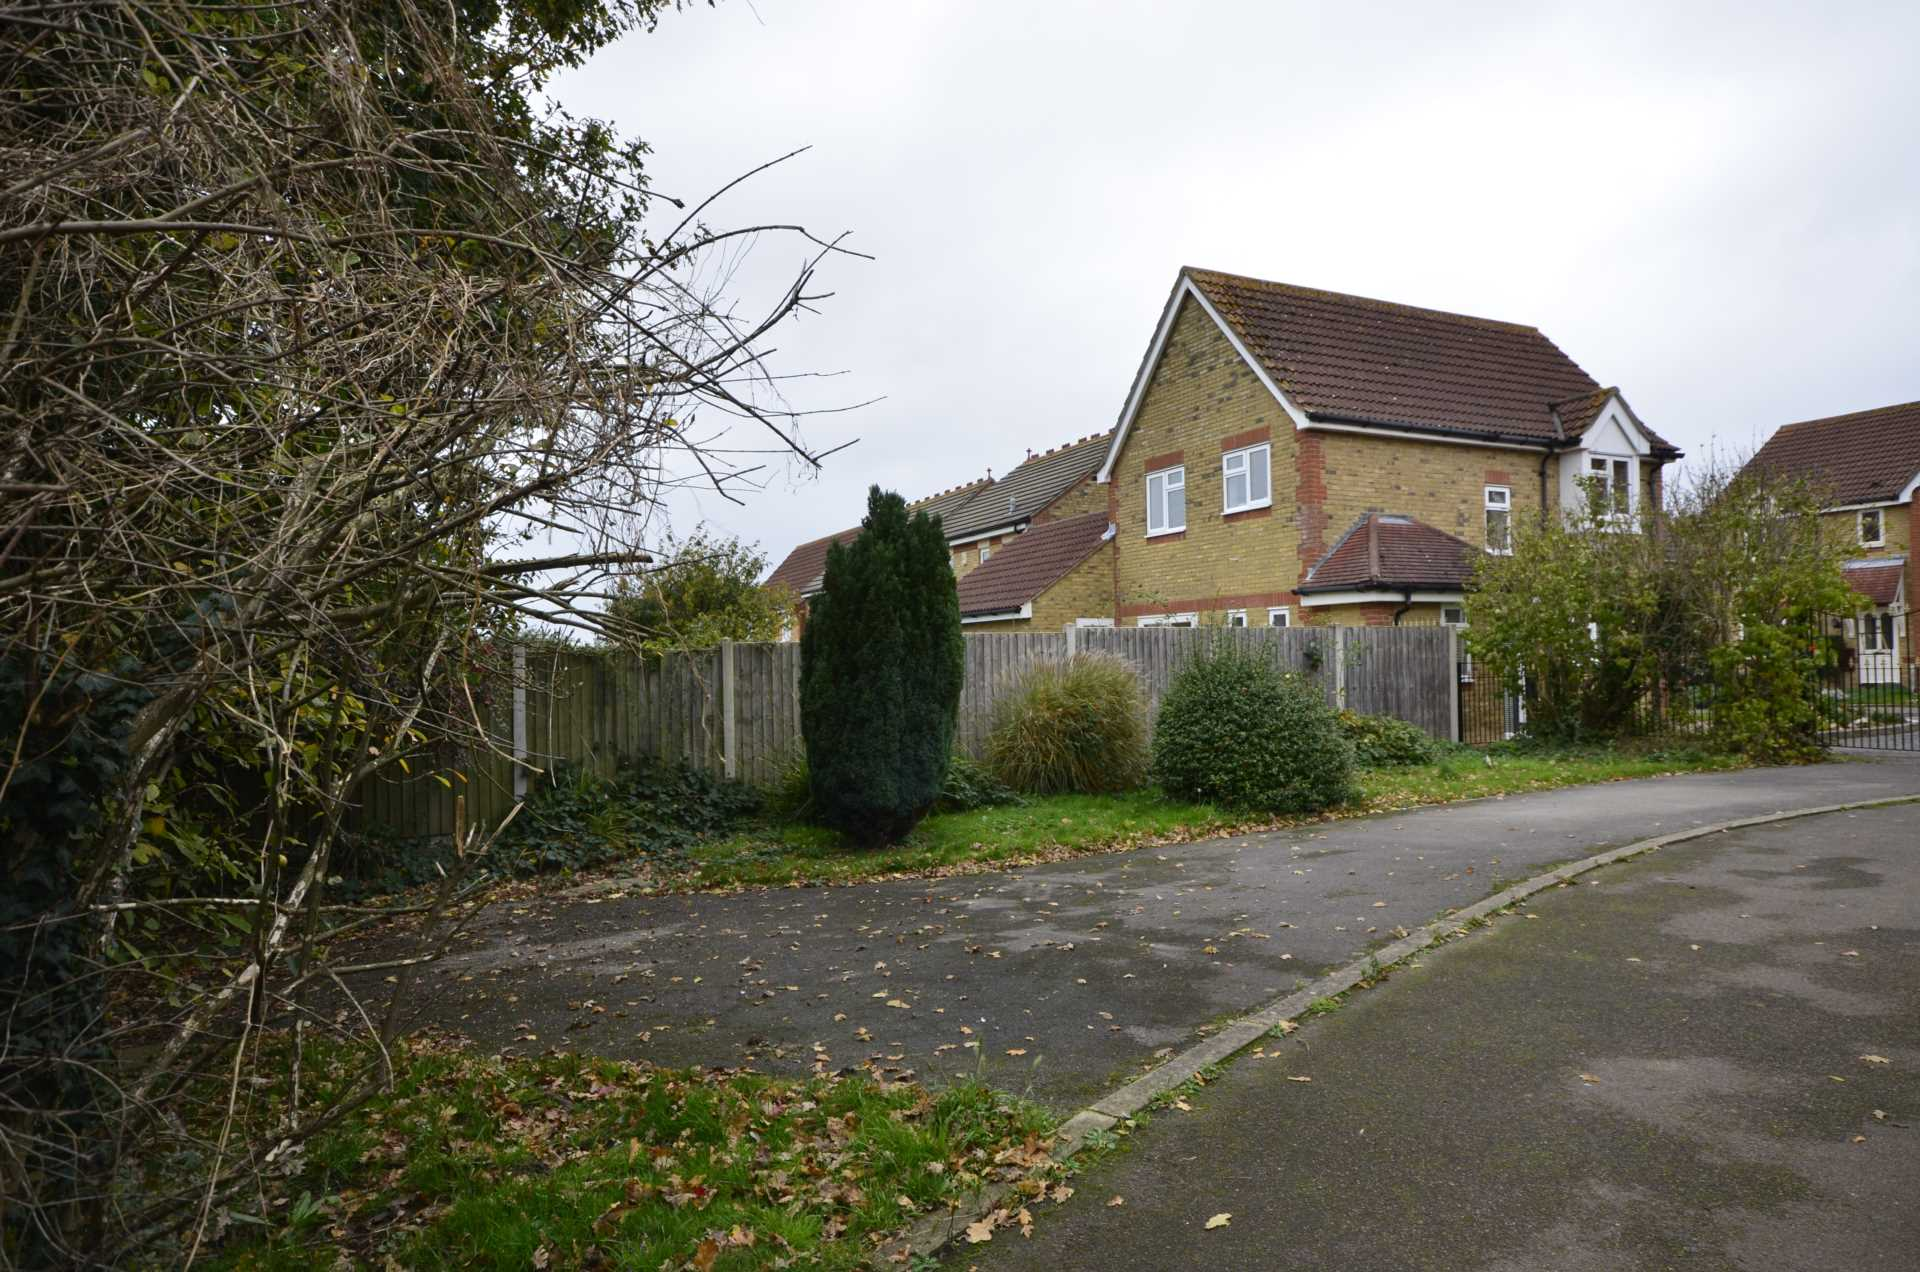 Quilters Drive, Billericay, Image 11